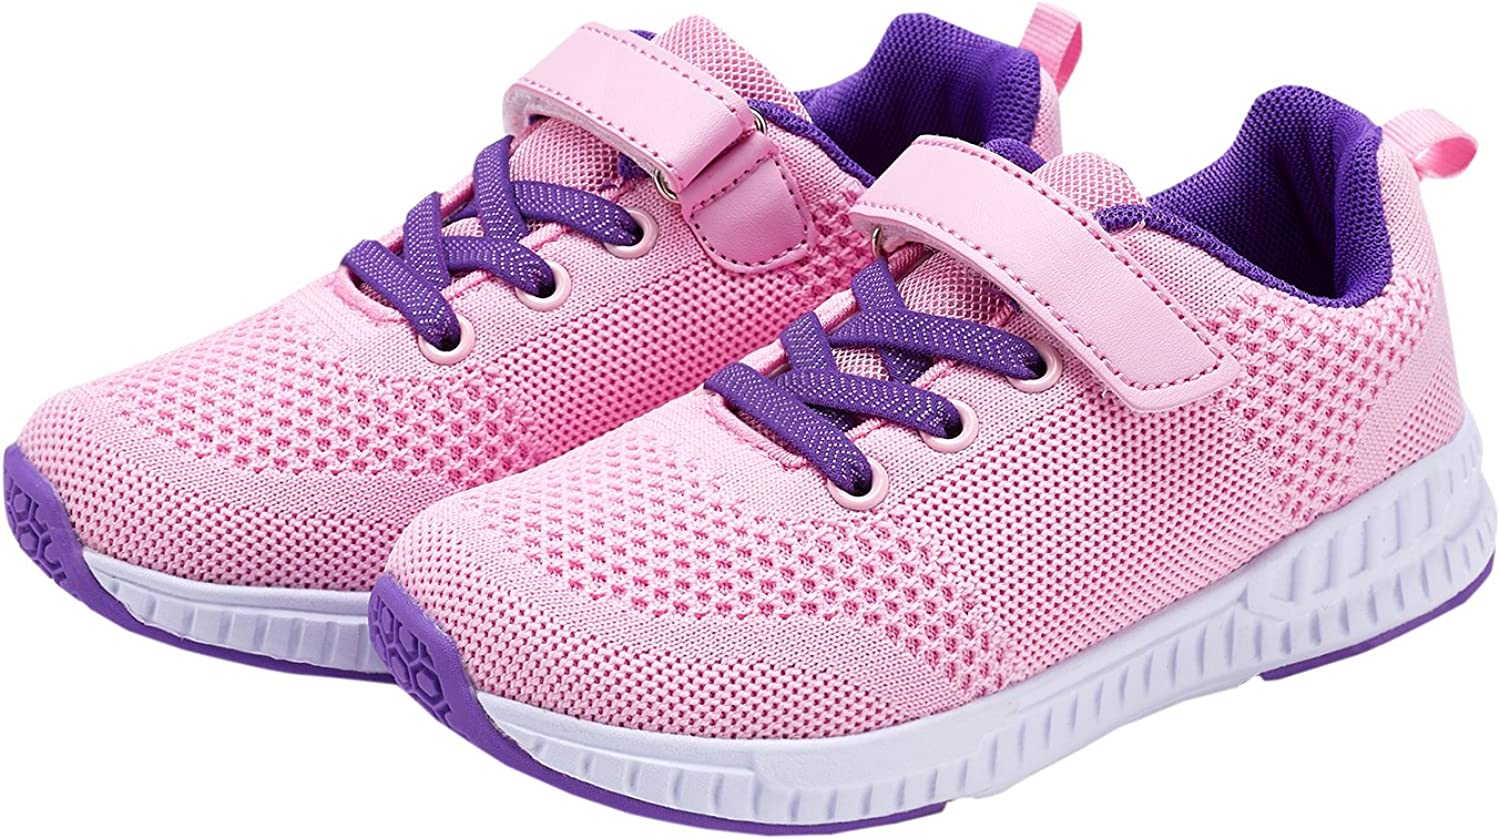 DESERT RAM Kids Fashion Sneakers Lightweight Breathable Walking Shoes Comfort Casual Sport Shoes for Boys Girls